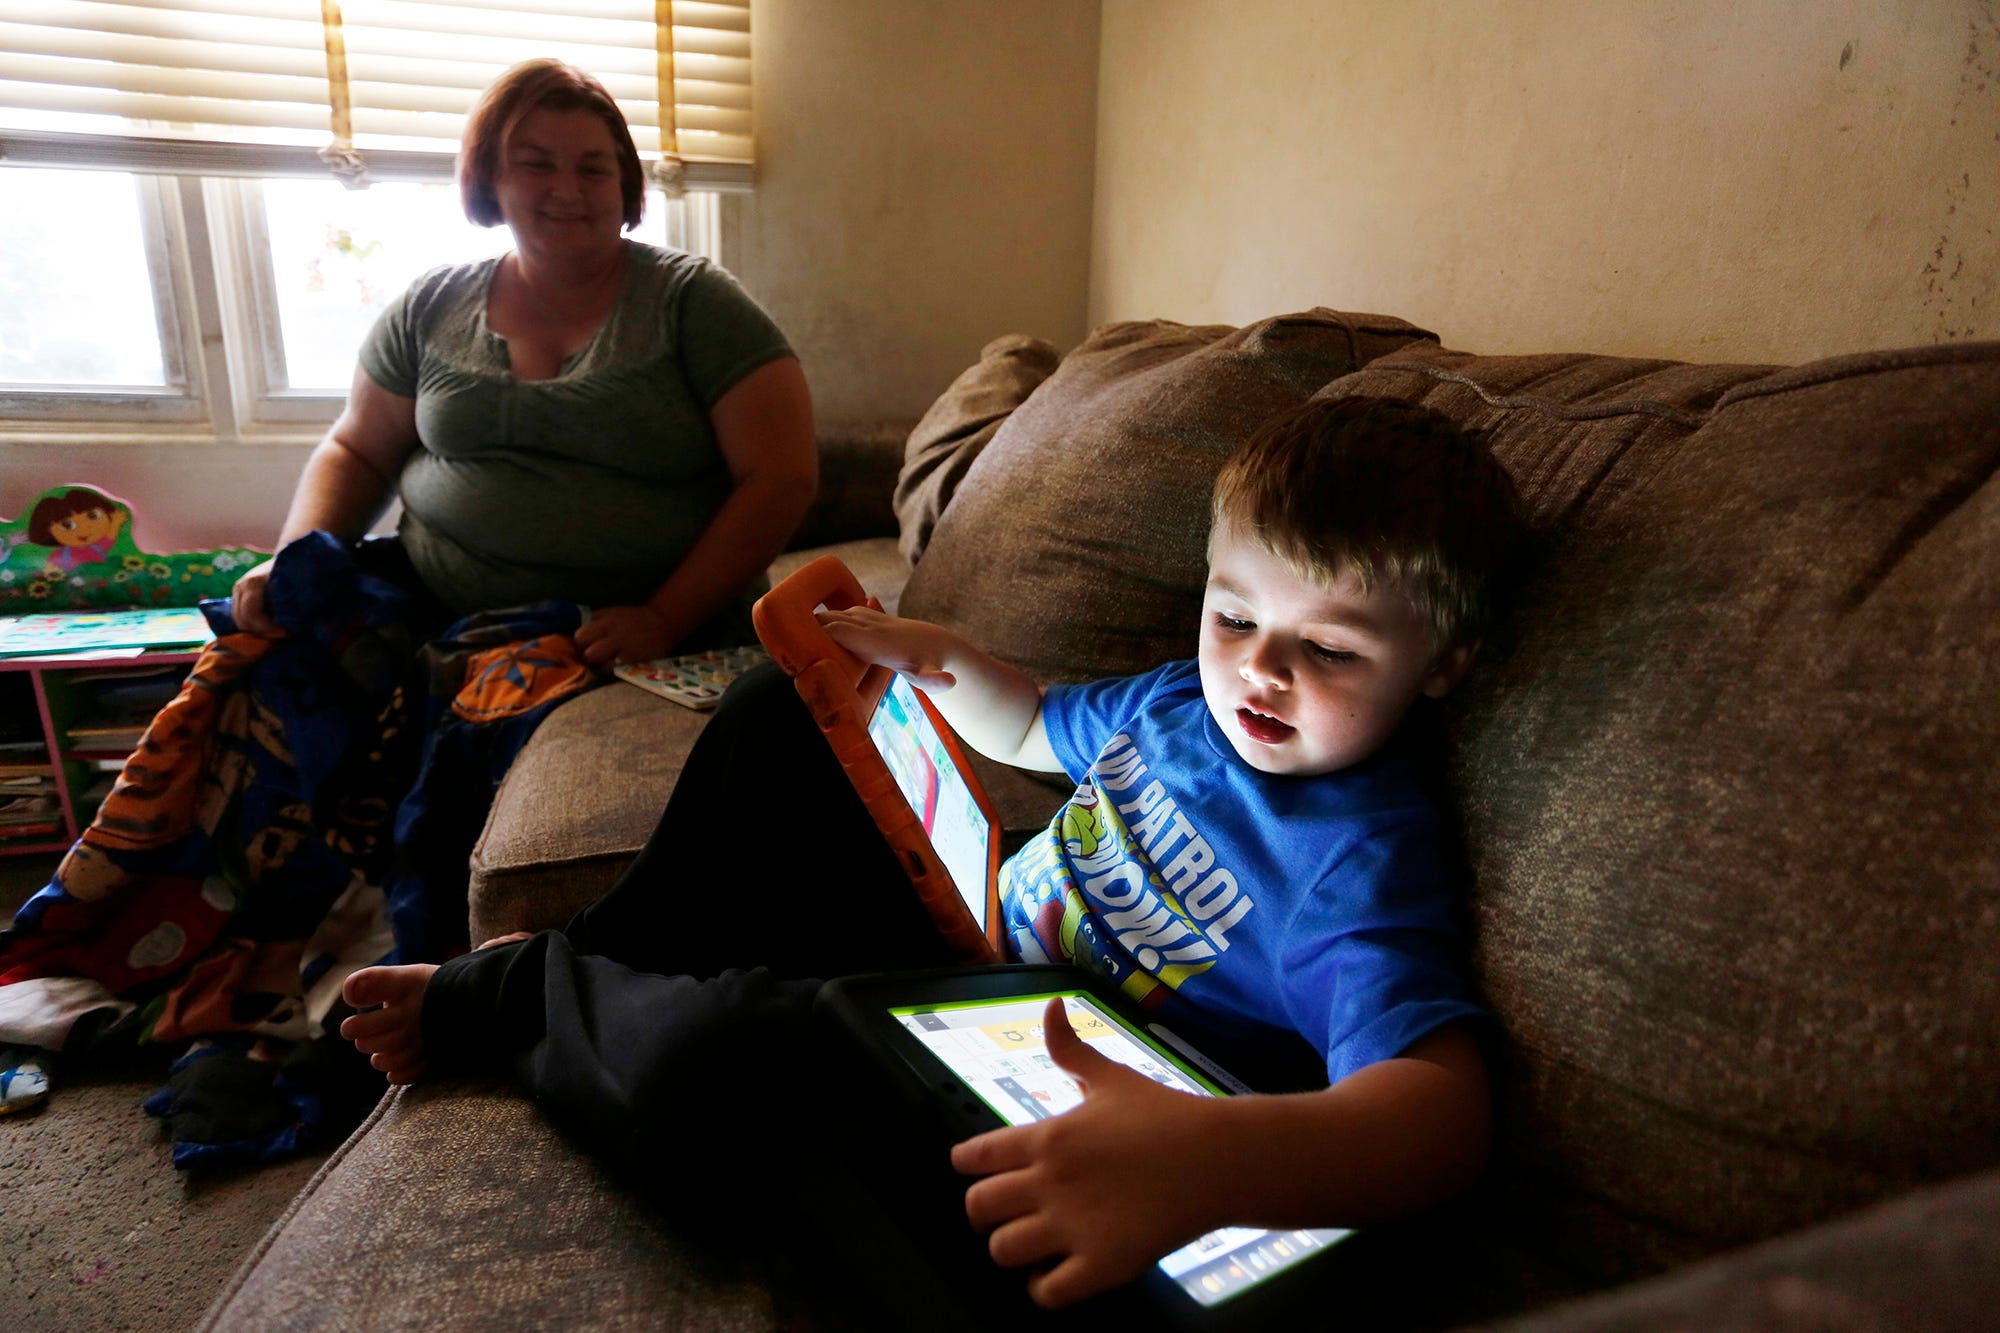 Jacob Kendall, 4, plays with an iPad and a Tobii Dynavox as he shares the living room couch with his mother Tiffany Kendall Thursday, September 27, 2018, in their Lafayette home. Jacob, who is autistic, uses the iPad for entertainment and the Tobii Dynavox to communicate.